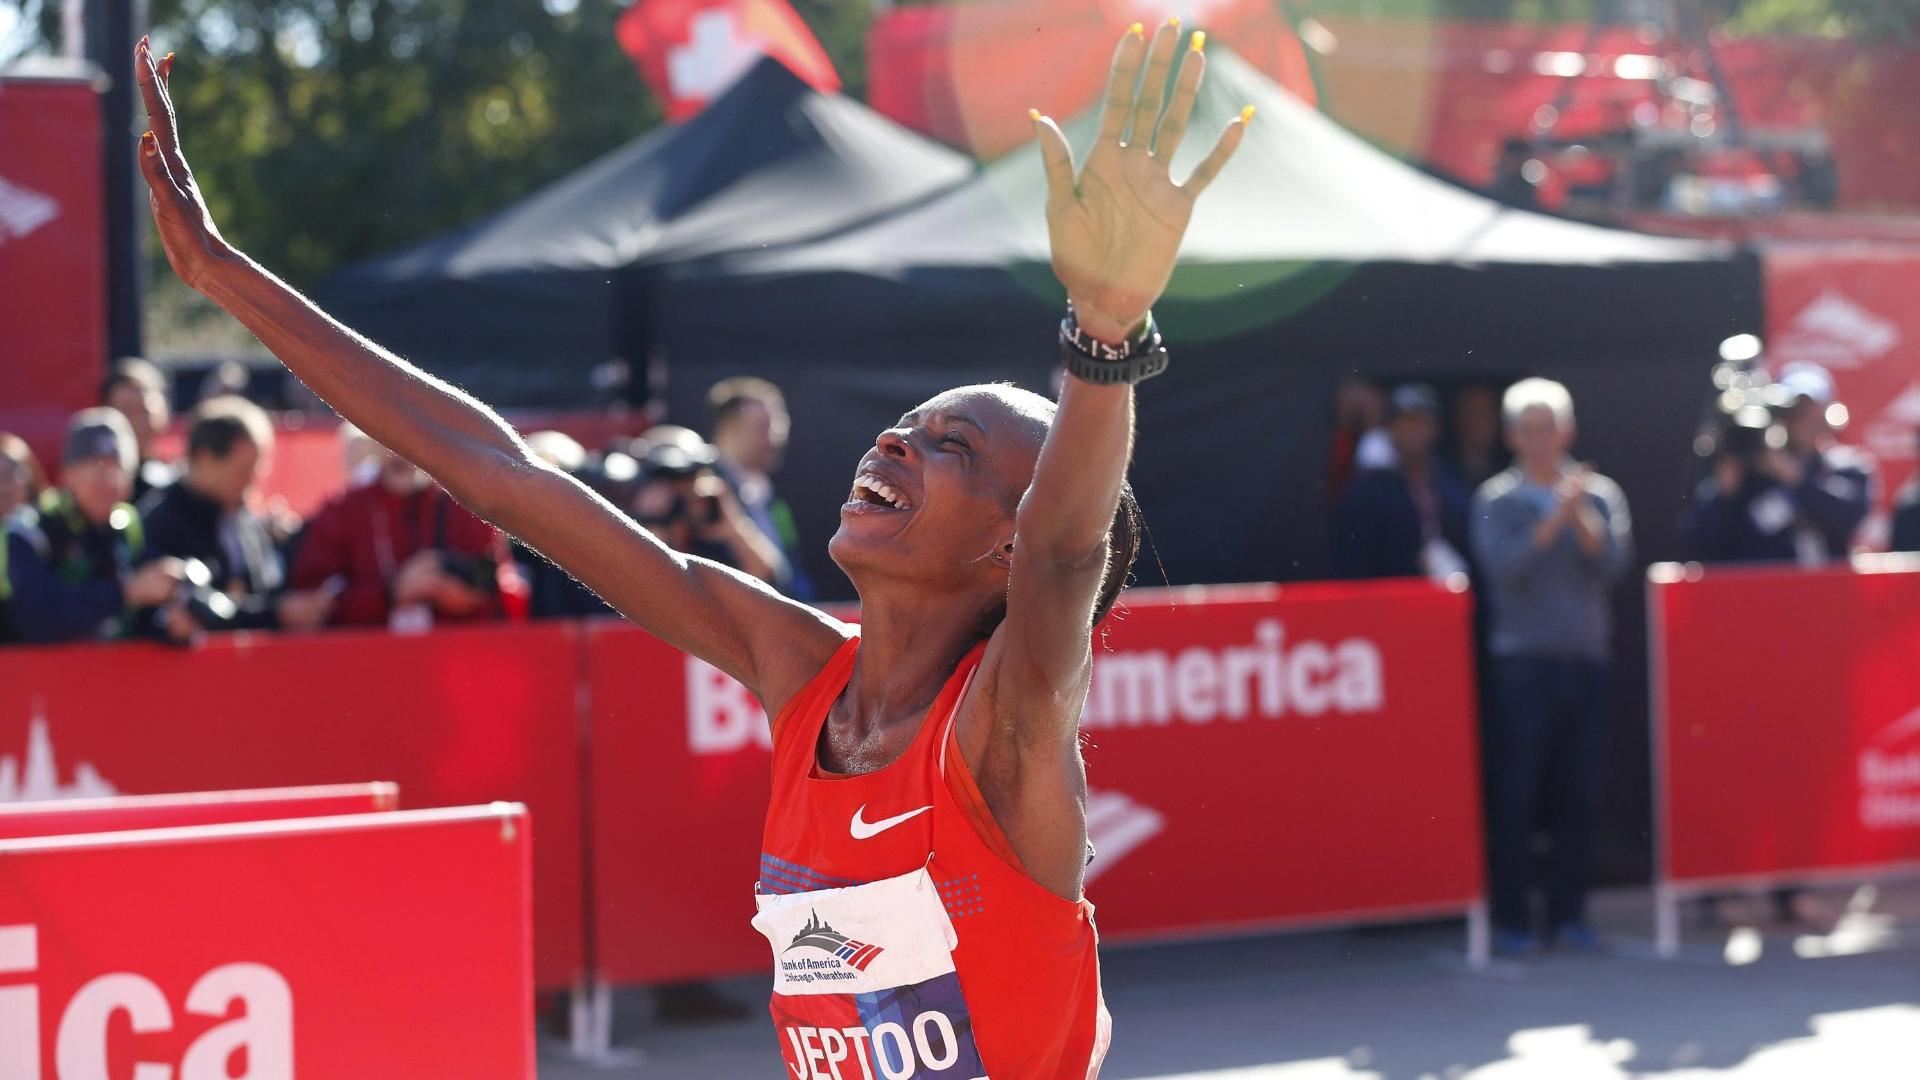 Chicago Marathon Champ Fails Doping Test